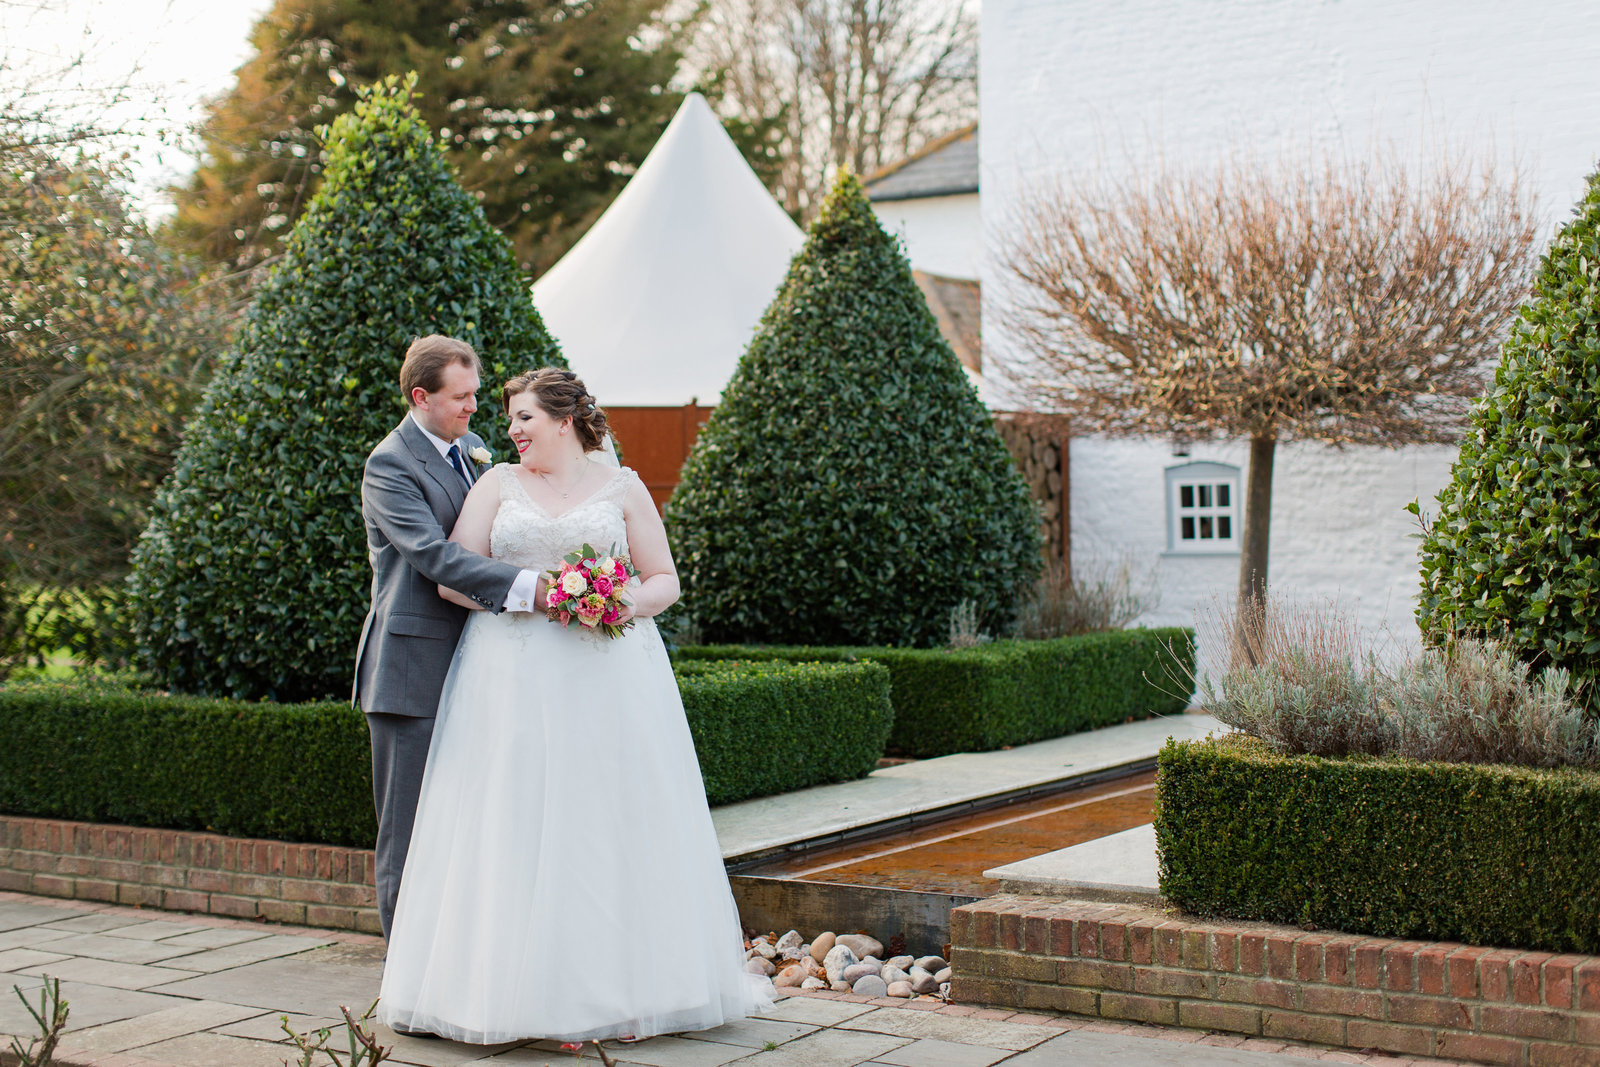 adorlee-0941-southend-barns-wedding-photographer-chichester-west-sussex